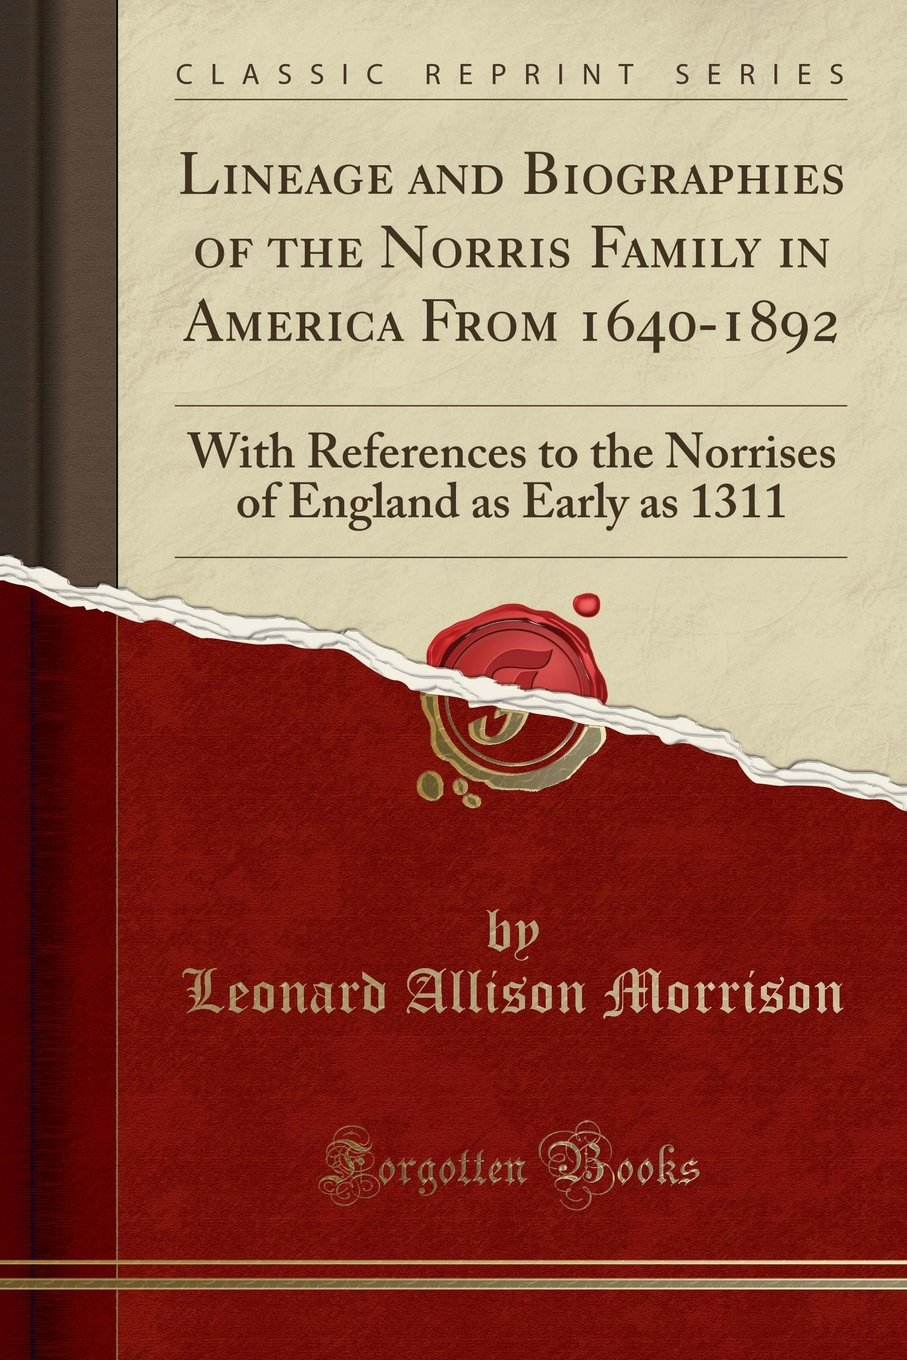 Lineage and Biographies of the Norris Family in America From 1640-1892: With References to the Norrises of England as Early as 1311 (Classic Reprint) pdf epub